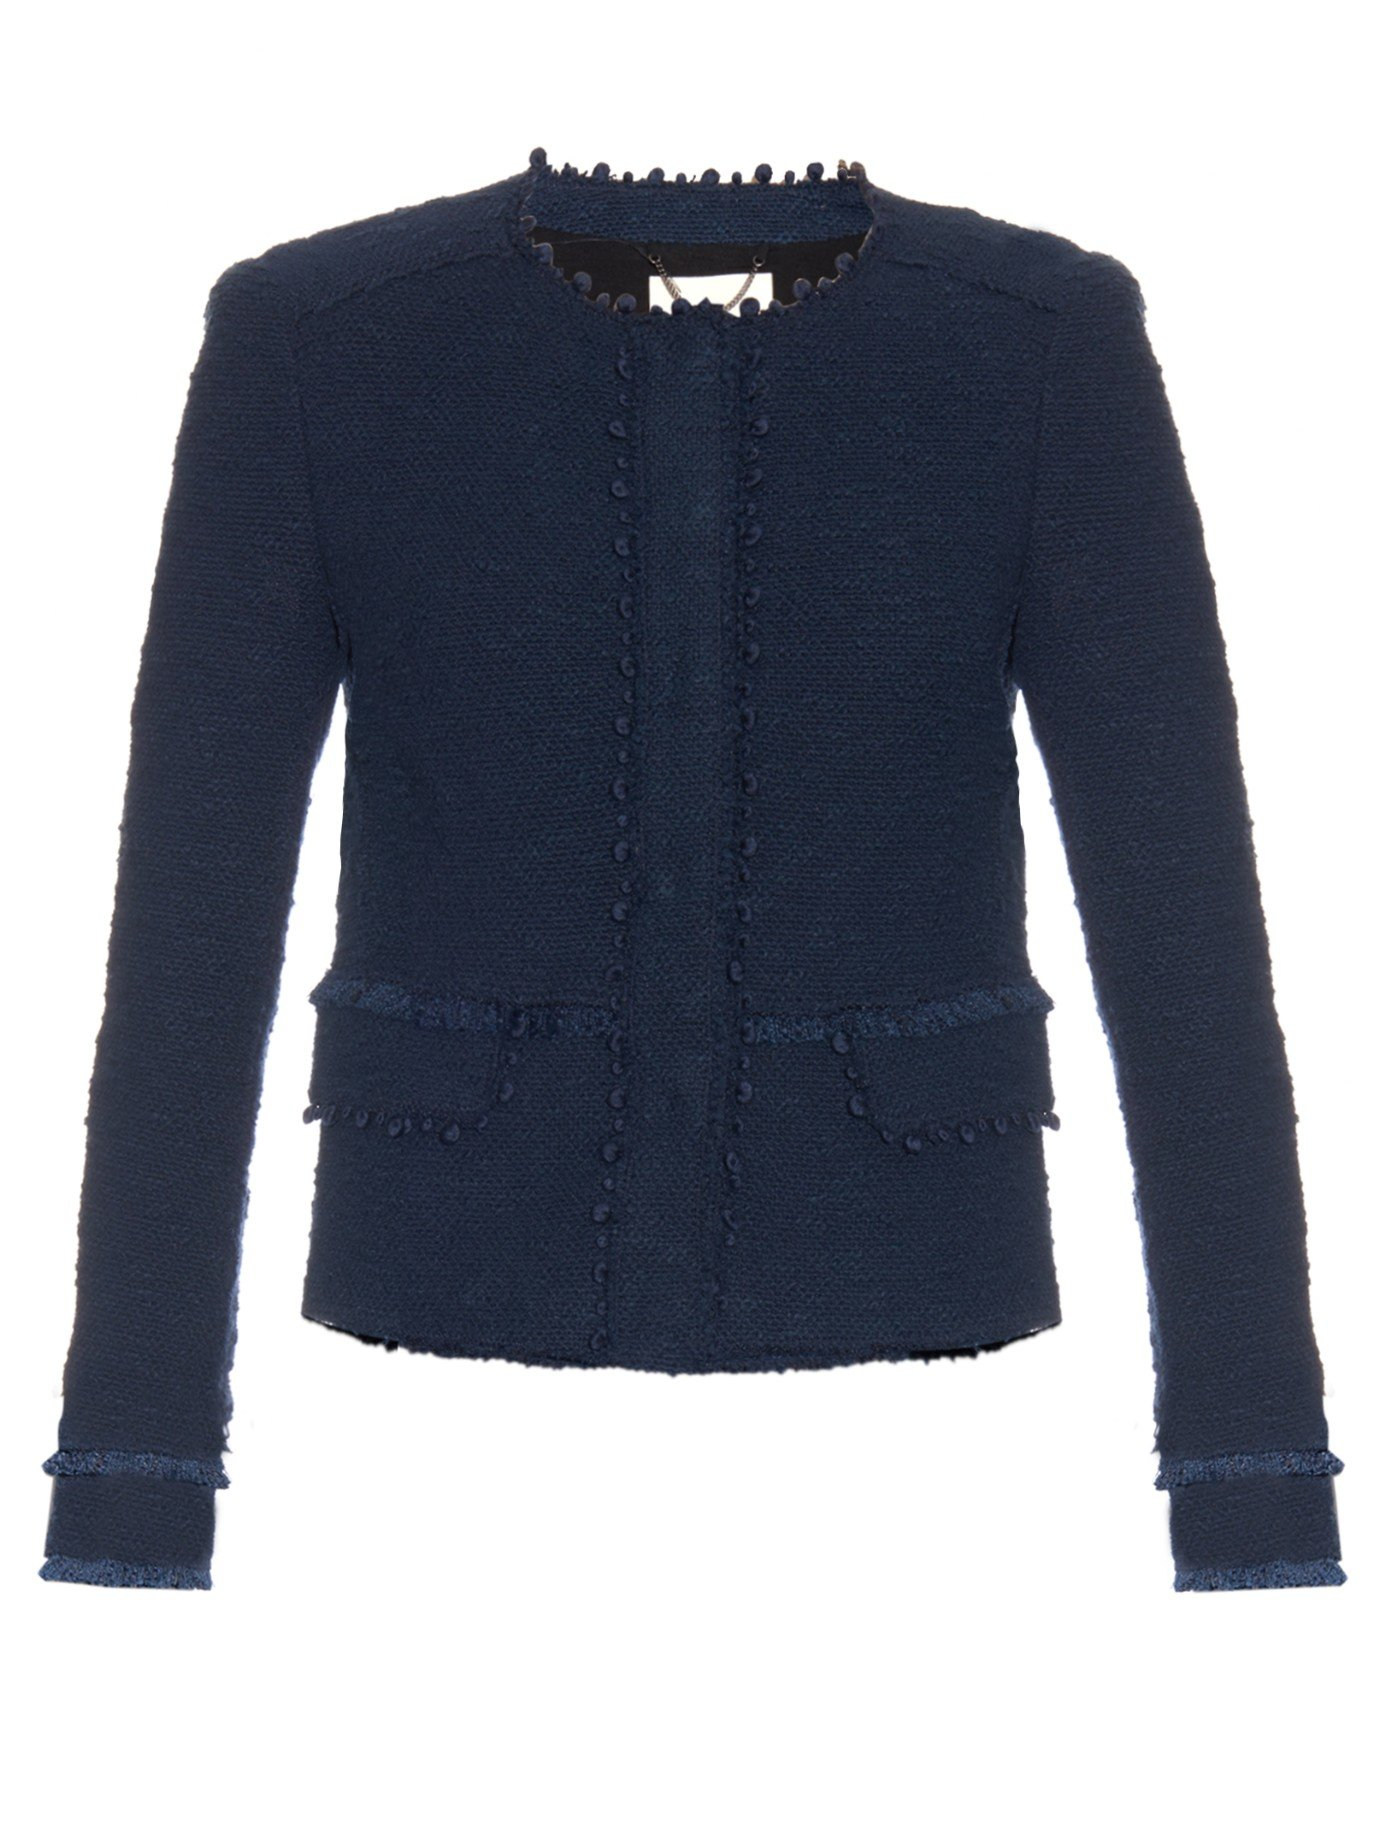 Find great deals on eBay for collarless jacket. Shop with confidence.